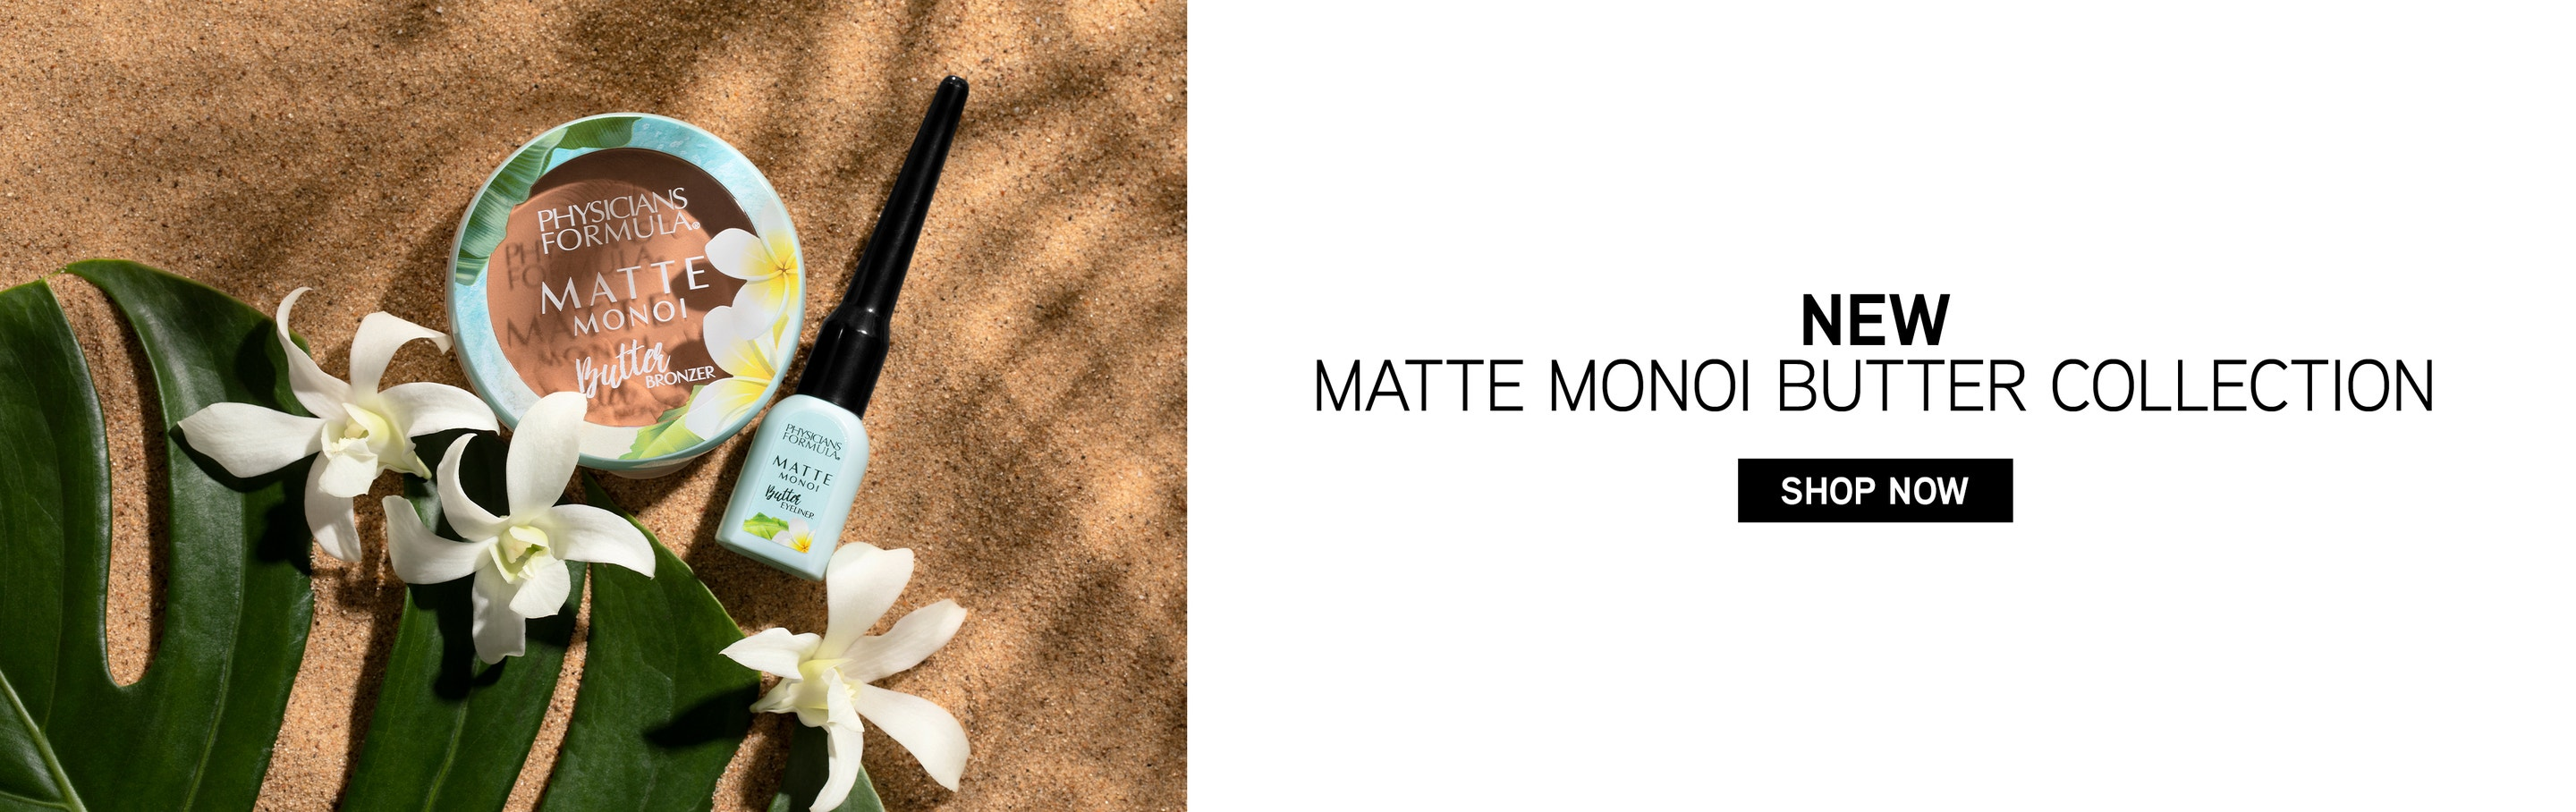 New Matte Monoi Butter Collection | Physicians Formula | Shop Now! | Products angled caps fastenend with sand background